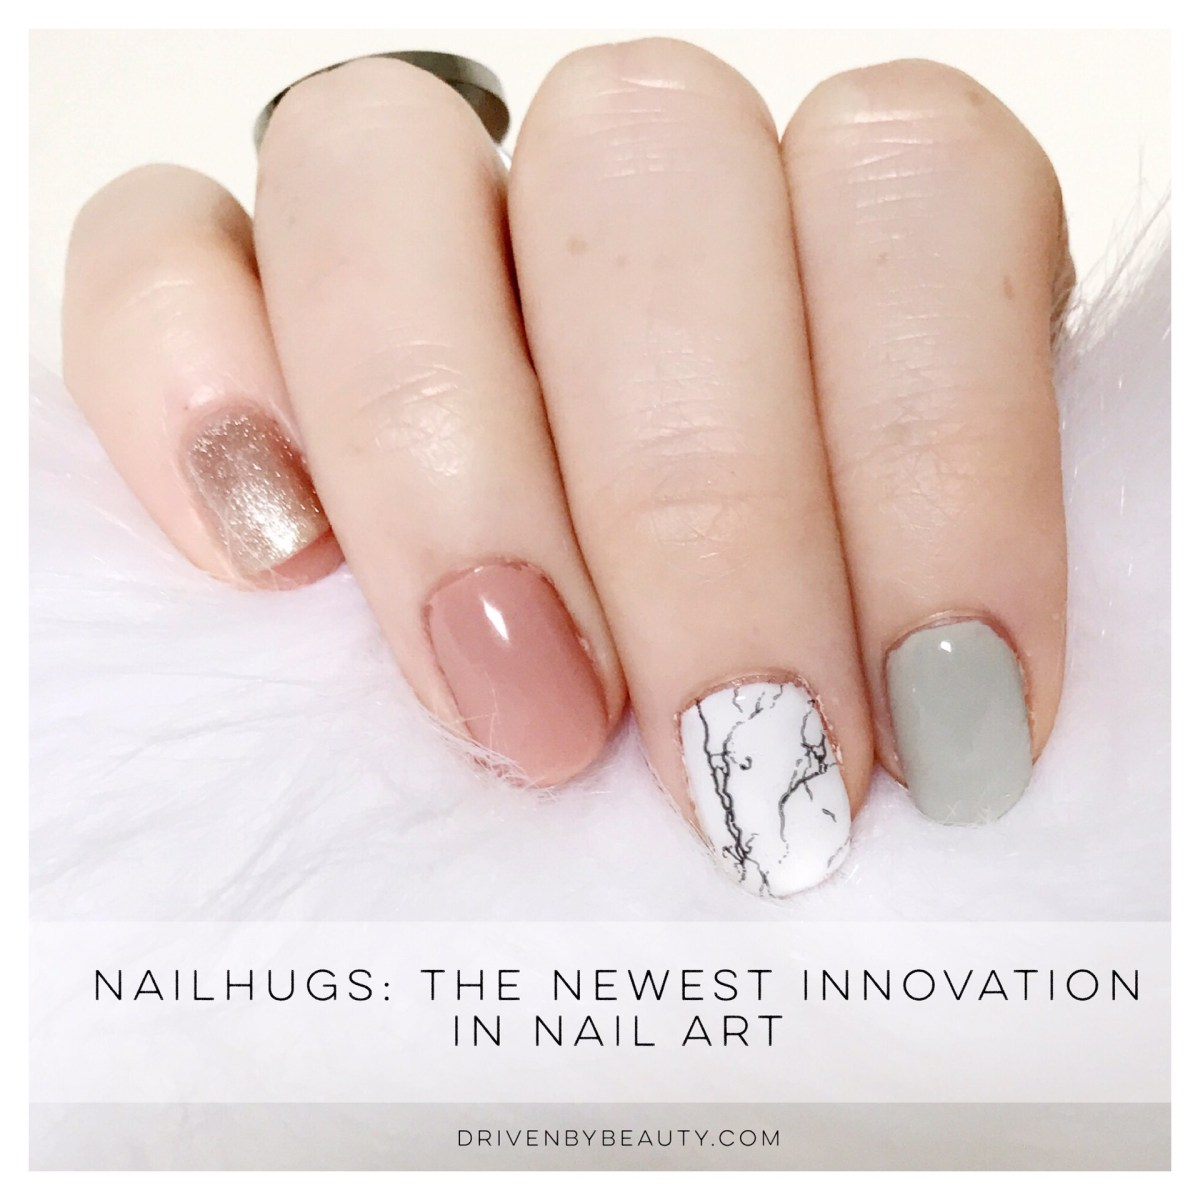 NailHugs: The newest innovation for nail art – Driven by Beauty